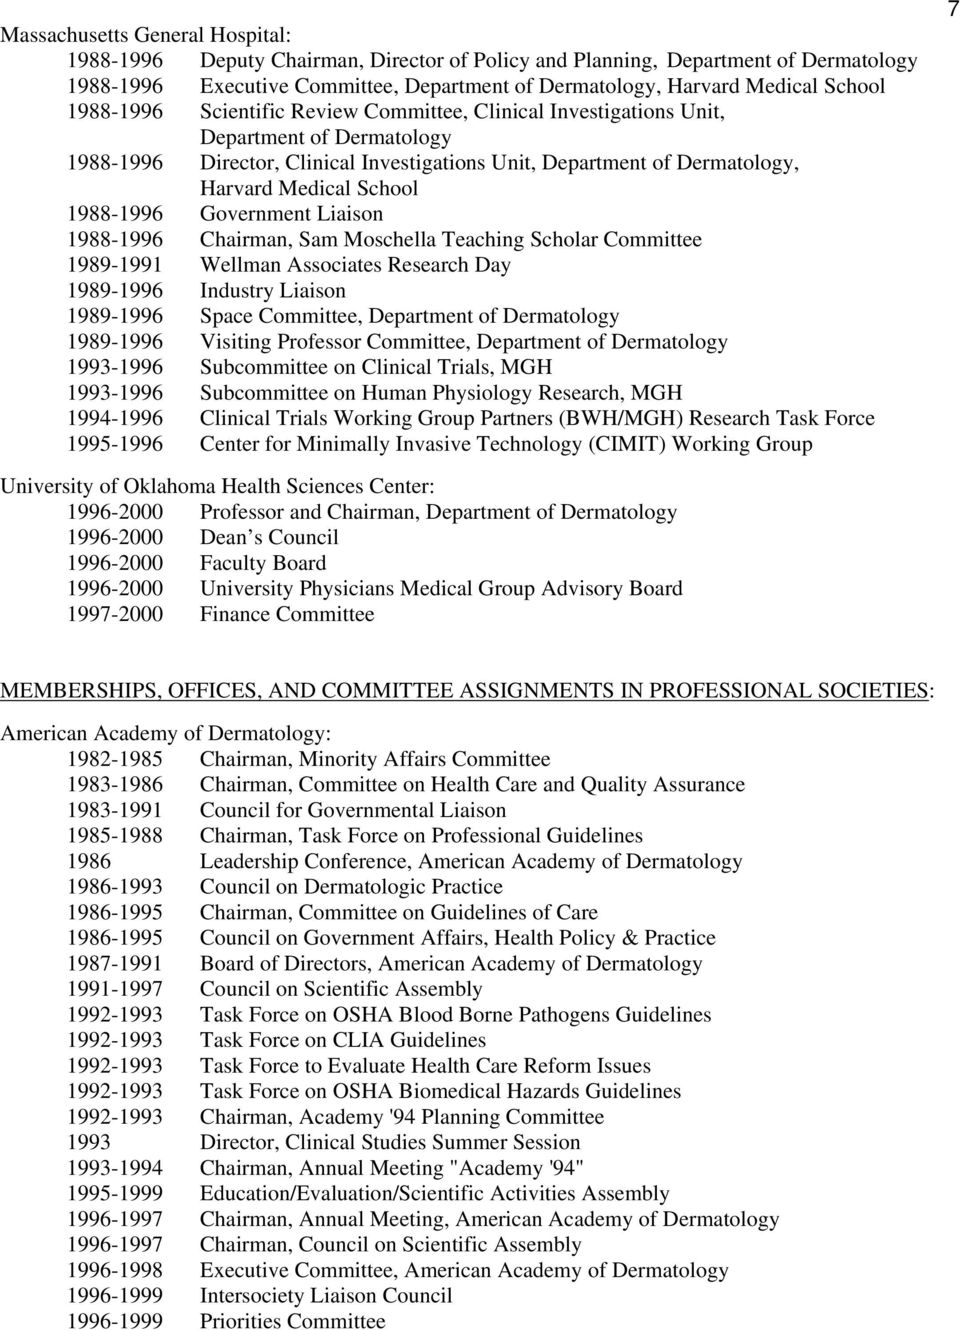 Wellman Associates Research Day 1989-1996 Industry Liaison 1989-1996 Space Committee, 1989-1996 Visiting Professor Committee, 1993-1996 Subcommittee on Clinical Trials, MGH 1993-1996 Subcommittee on